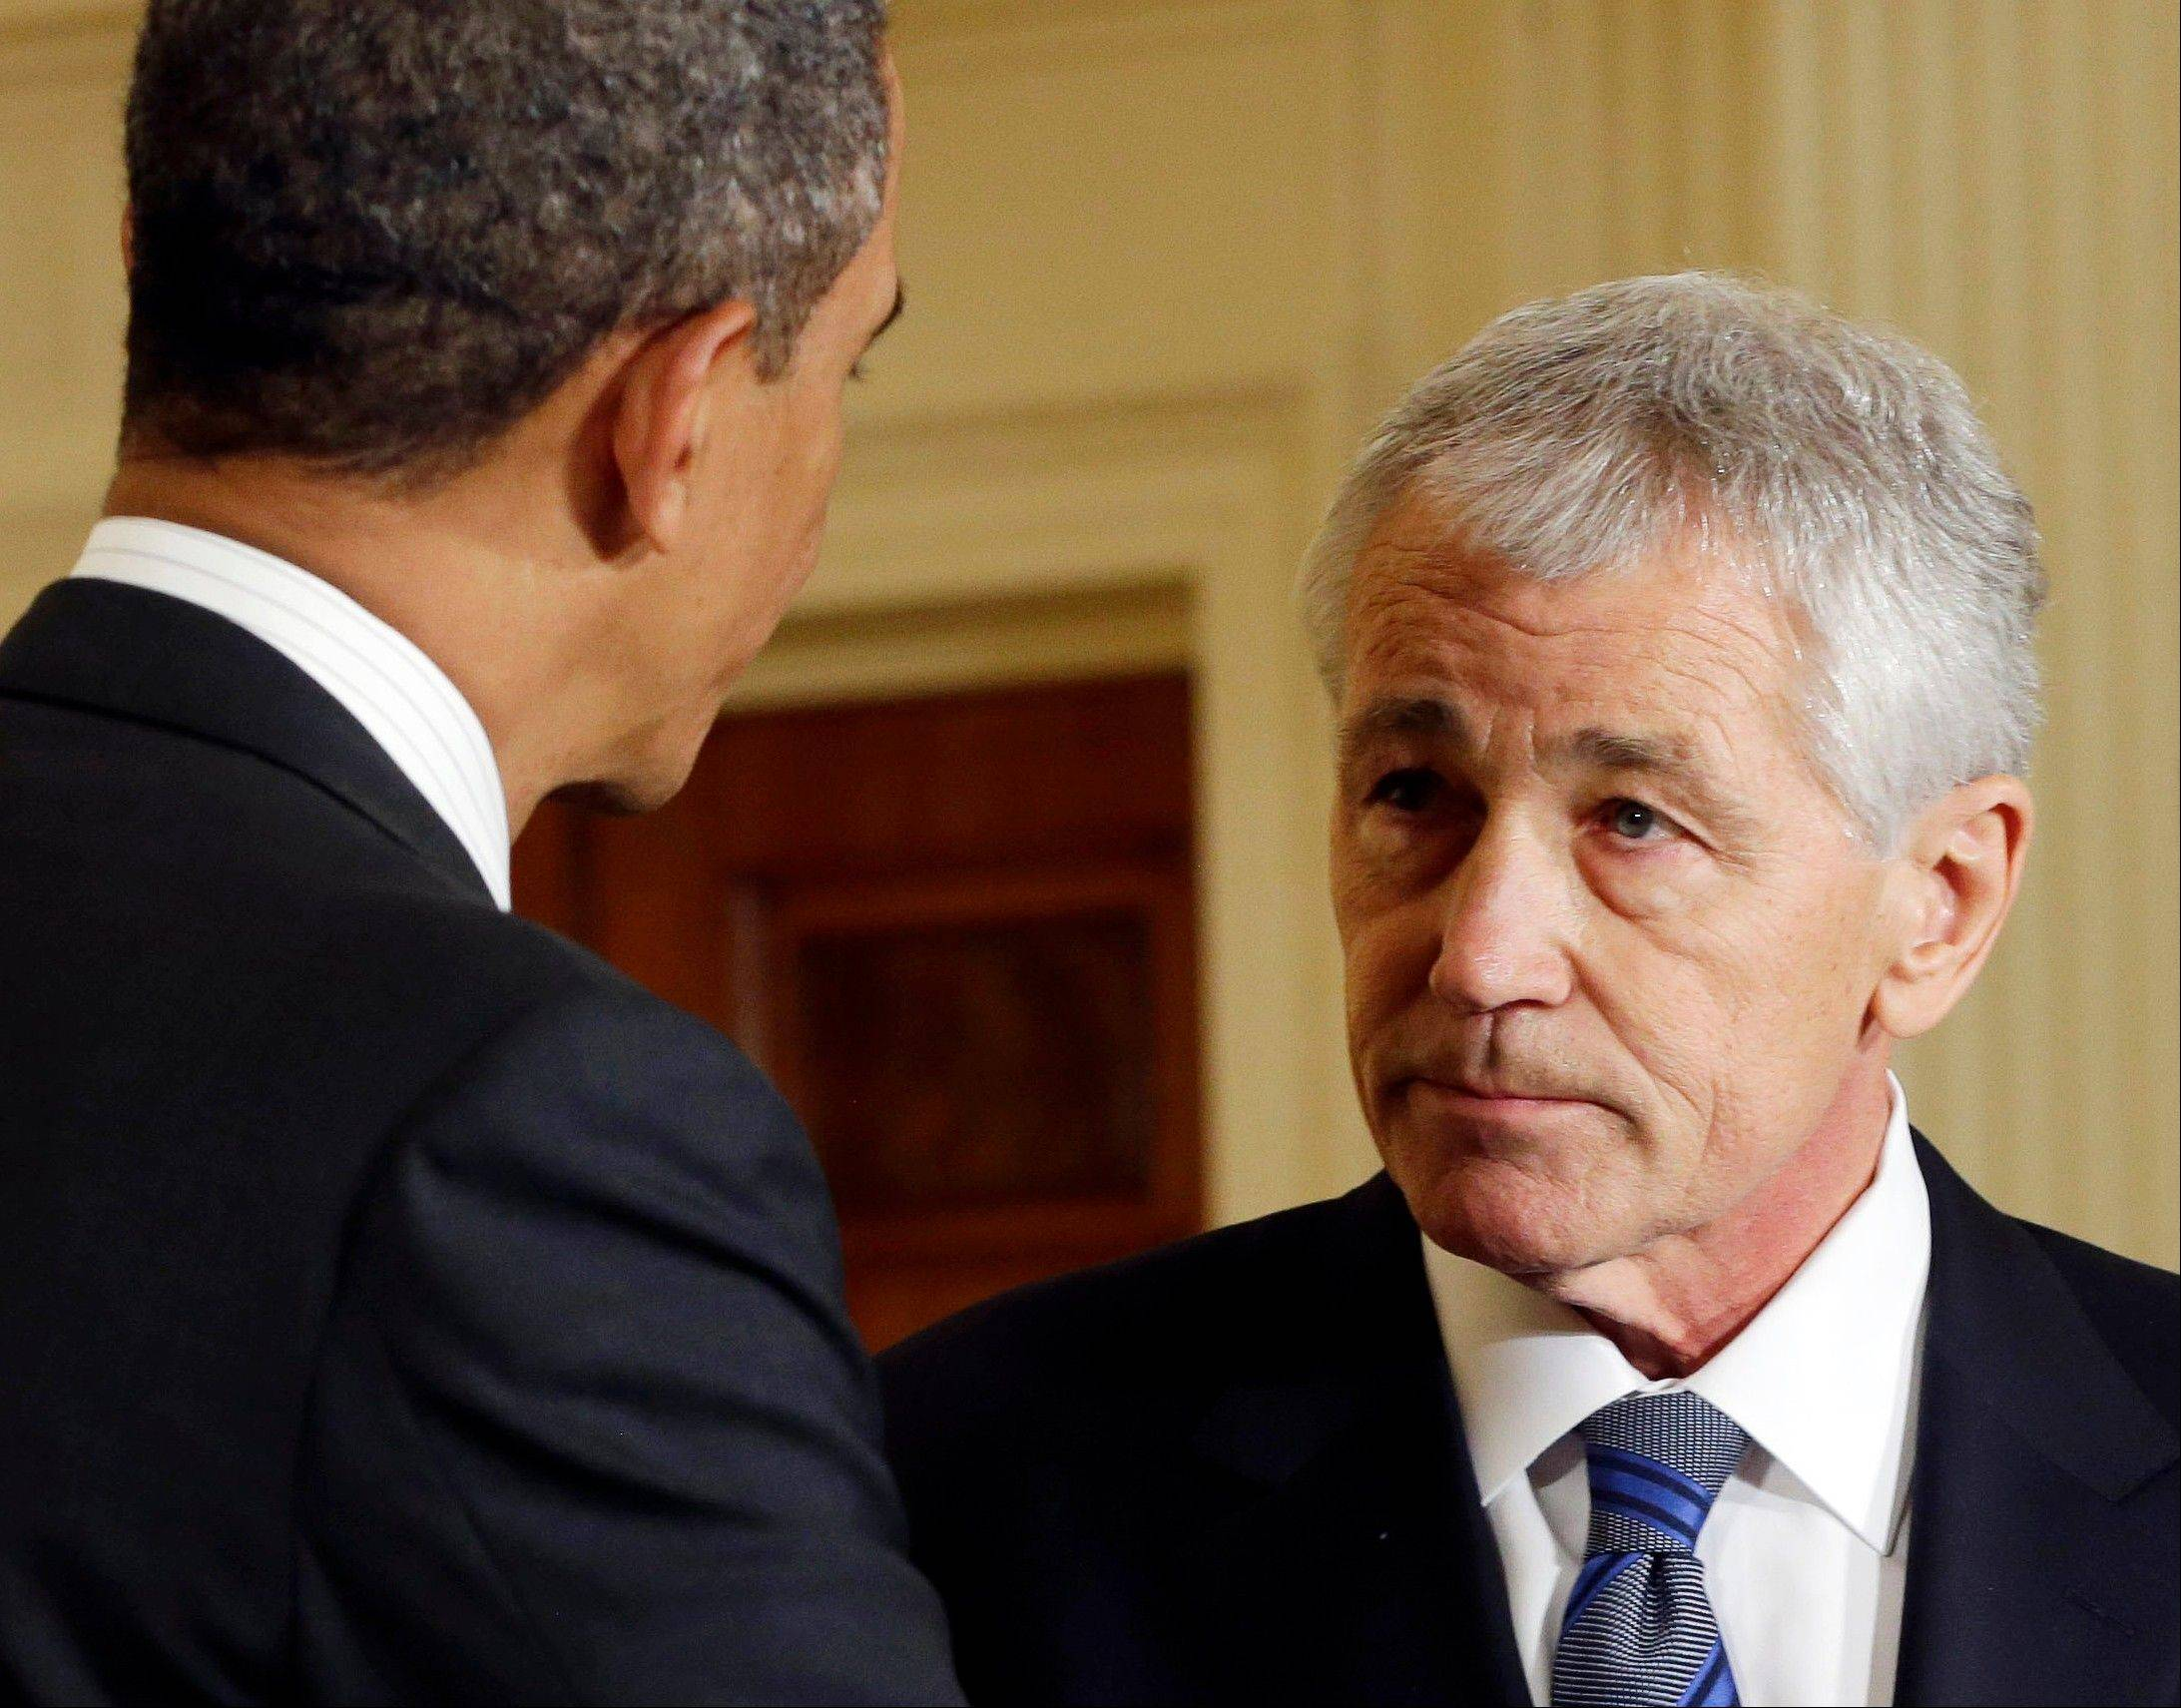 Chuck Hagel, the likely next secretary of defense, would be the first to enter the Pentagon as a public advocate for sharply reducing the number of U.S. nuclear weapons, possibly without equivalent cuts by Russia. He supports an international movement called Global Zero that favors eliminating all nuclear weapons. That puts him outside the orthodoxy embraced by many of his fellow Republicans but inside a widening circle of national security thinkers -- including President Barack Obama.